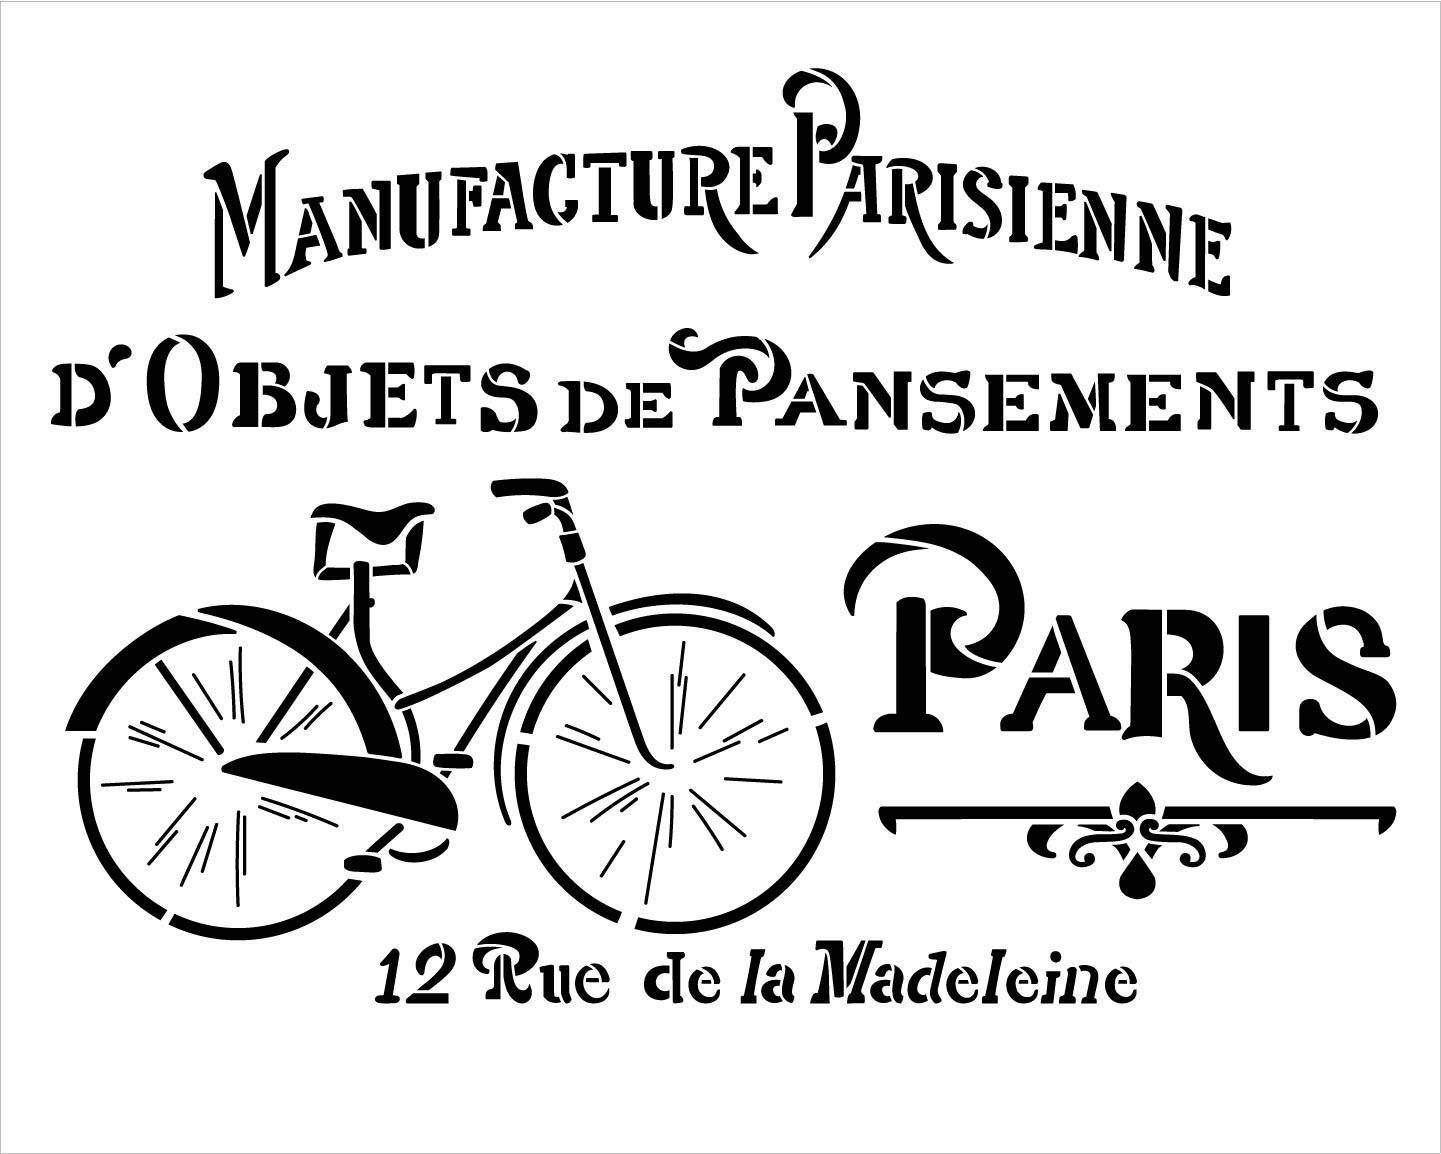 French Vintage Paris Bicycle Stencil by StudioR12 | DIY Old Ephemera Home Decor & Furniture | Antique Bike Word Art | Craft & Paint Farmhouse Wood Signs | Reusable Mylar Template | Size (20 x 16 inch)